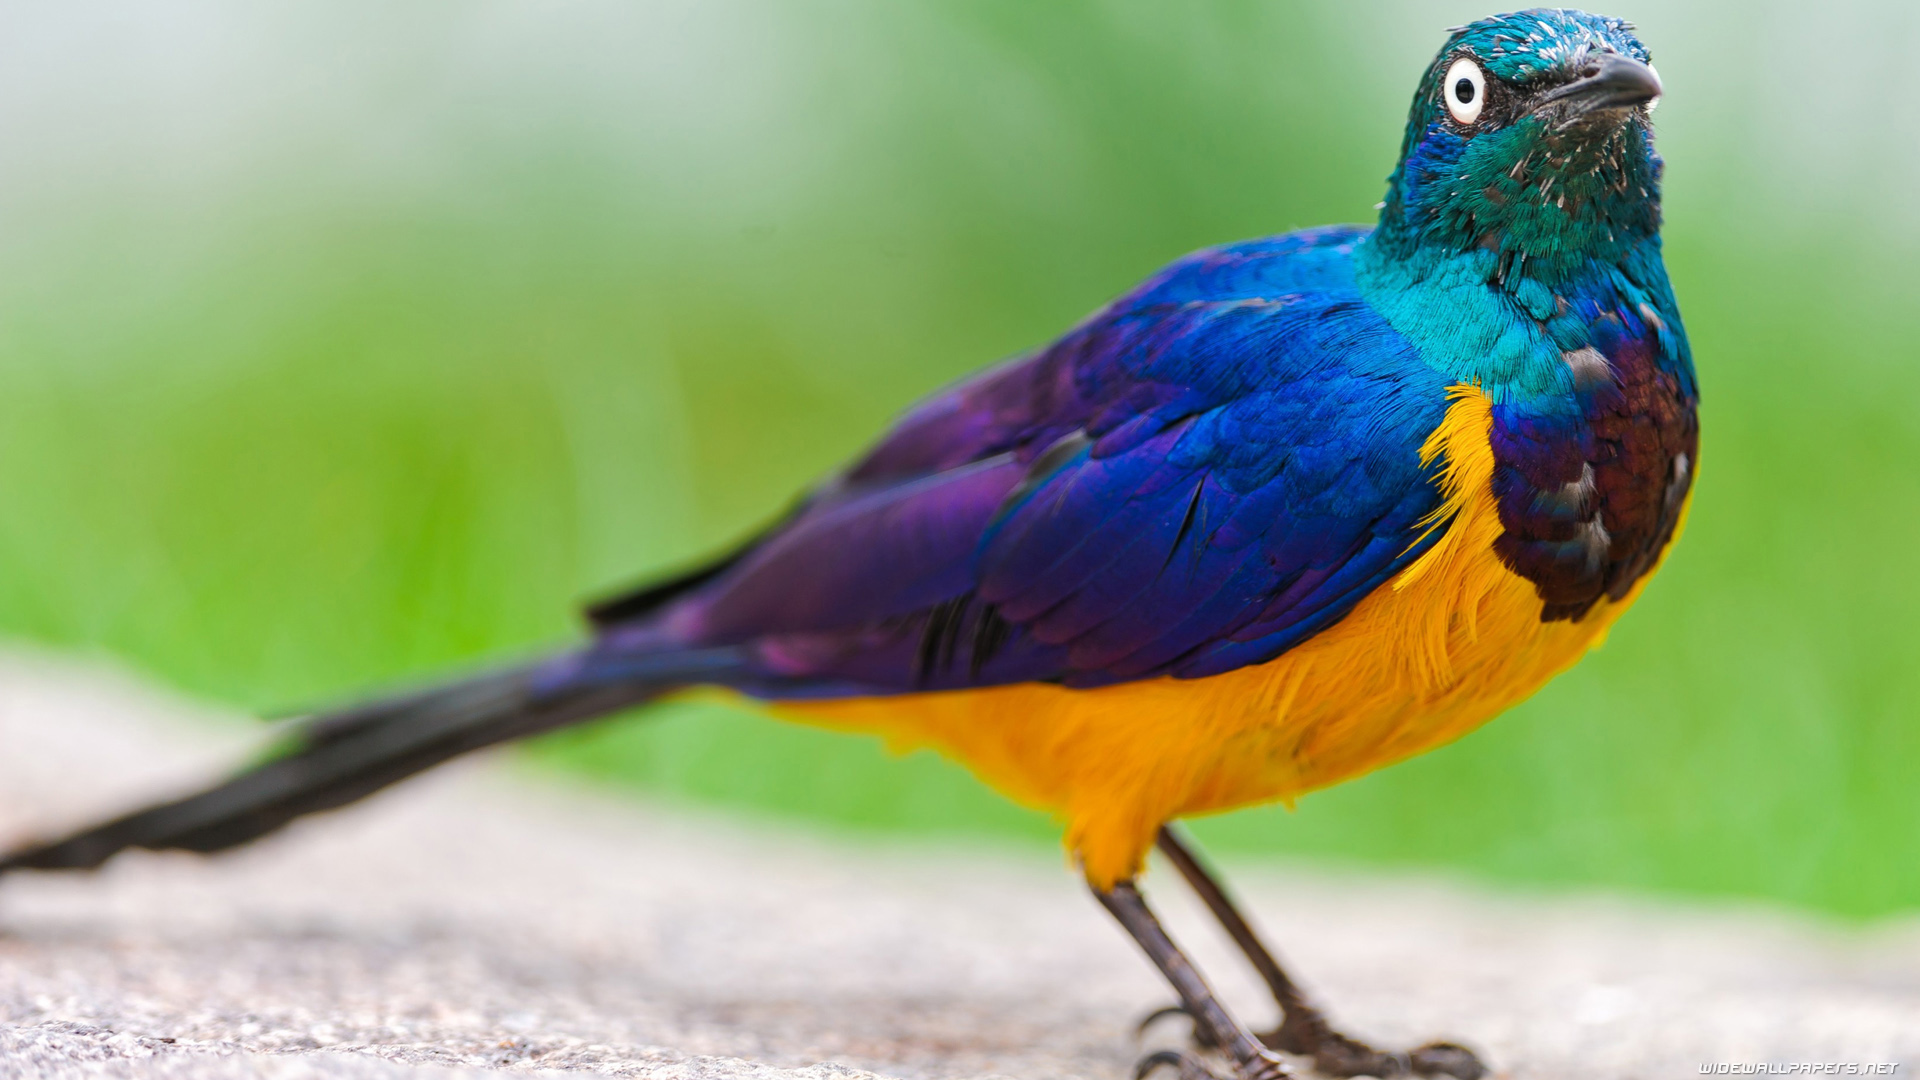 Any One 1 6 Jaeger Birds Hd Wallpapers: Animals & Birds WallPapers